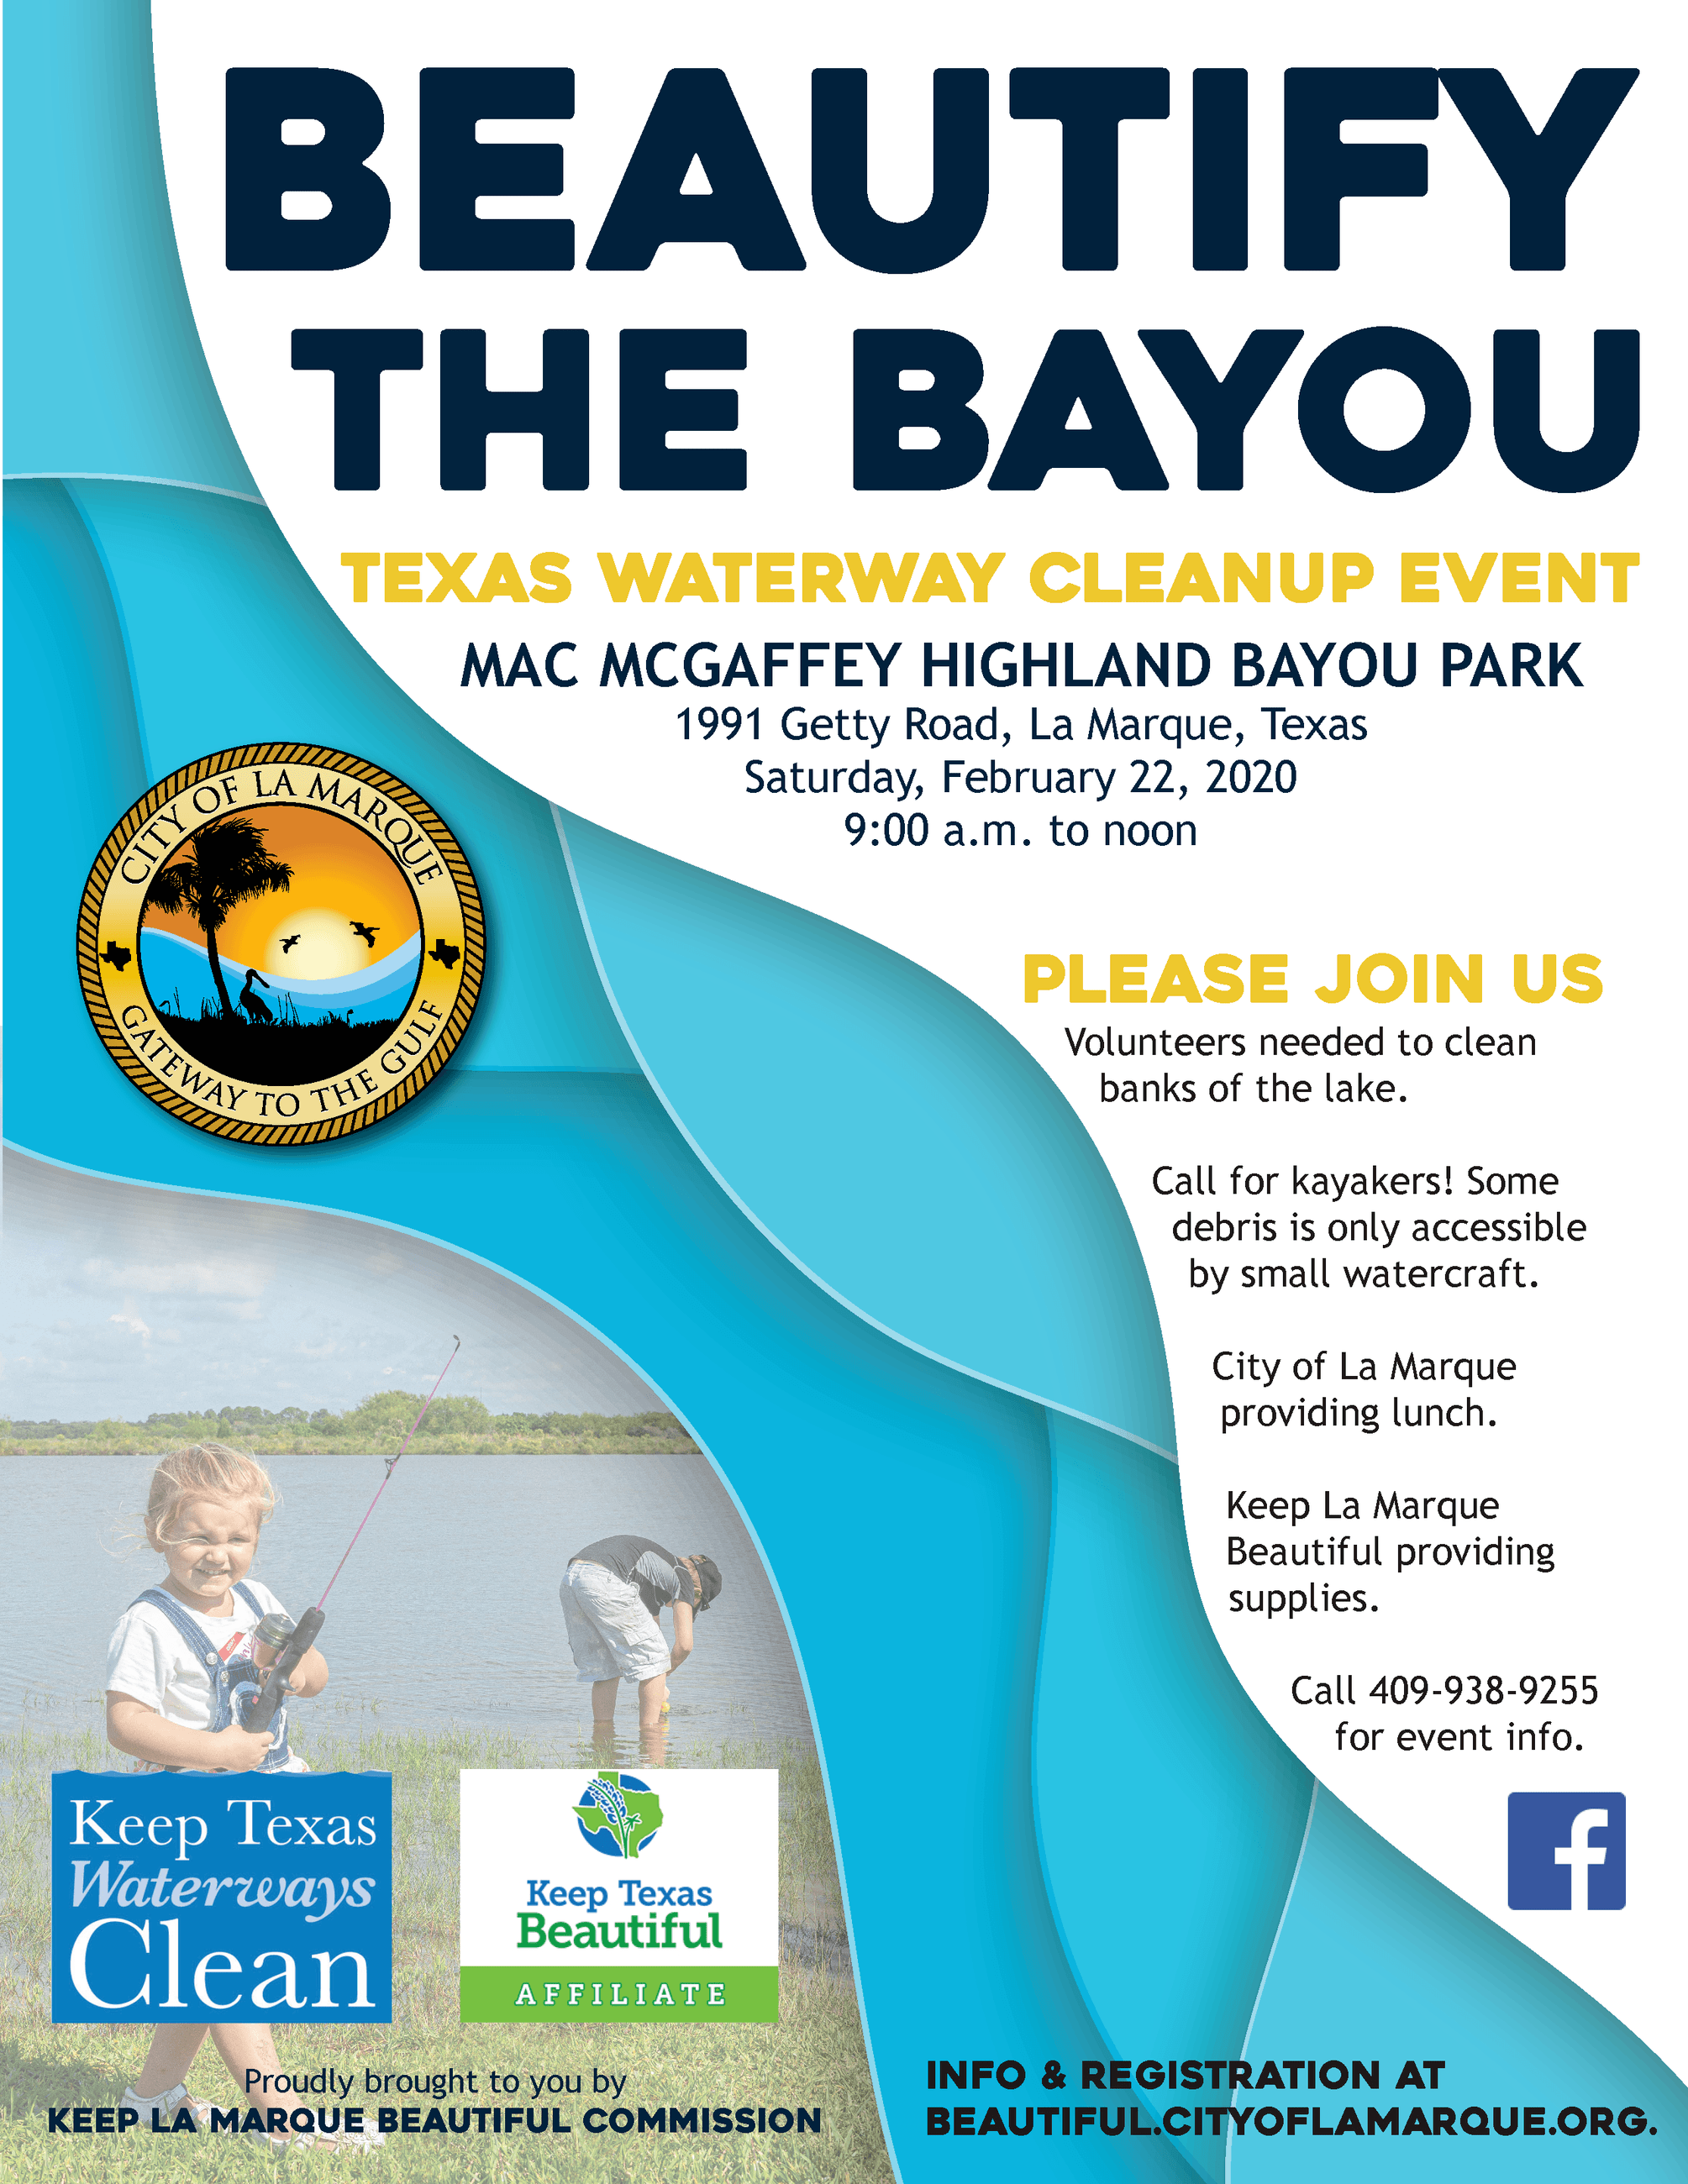 Beautify the Bayou event flyer